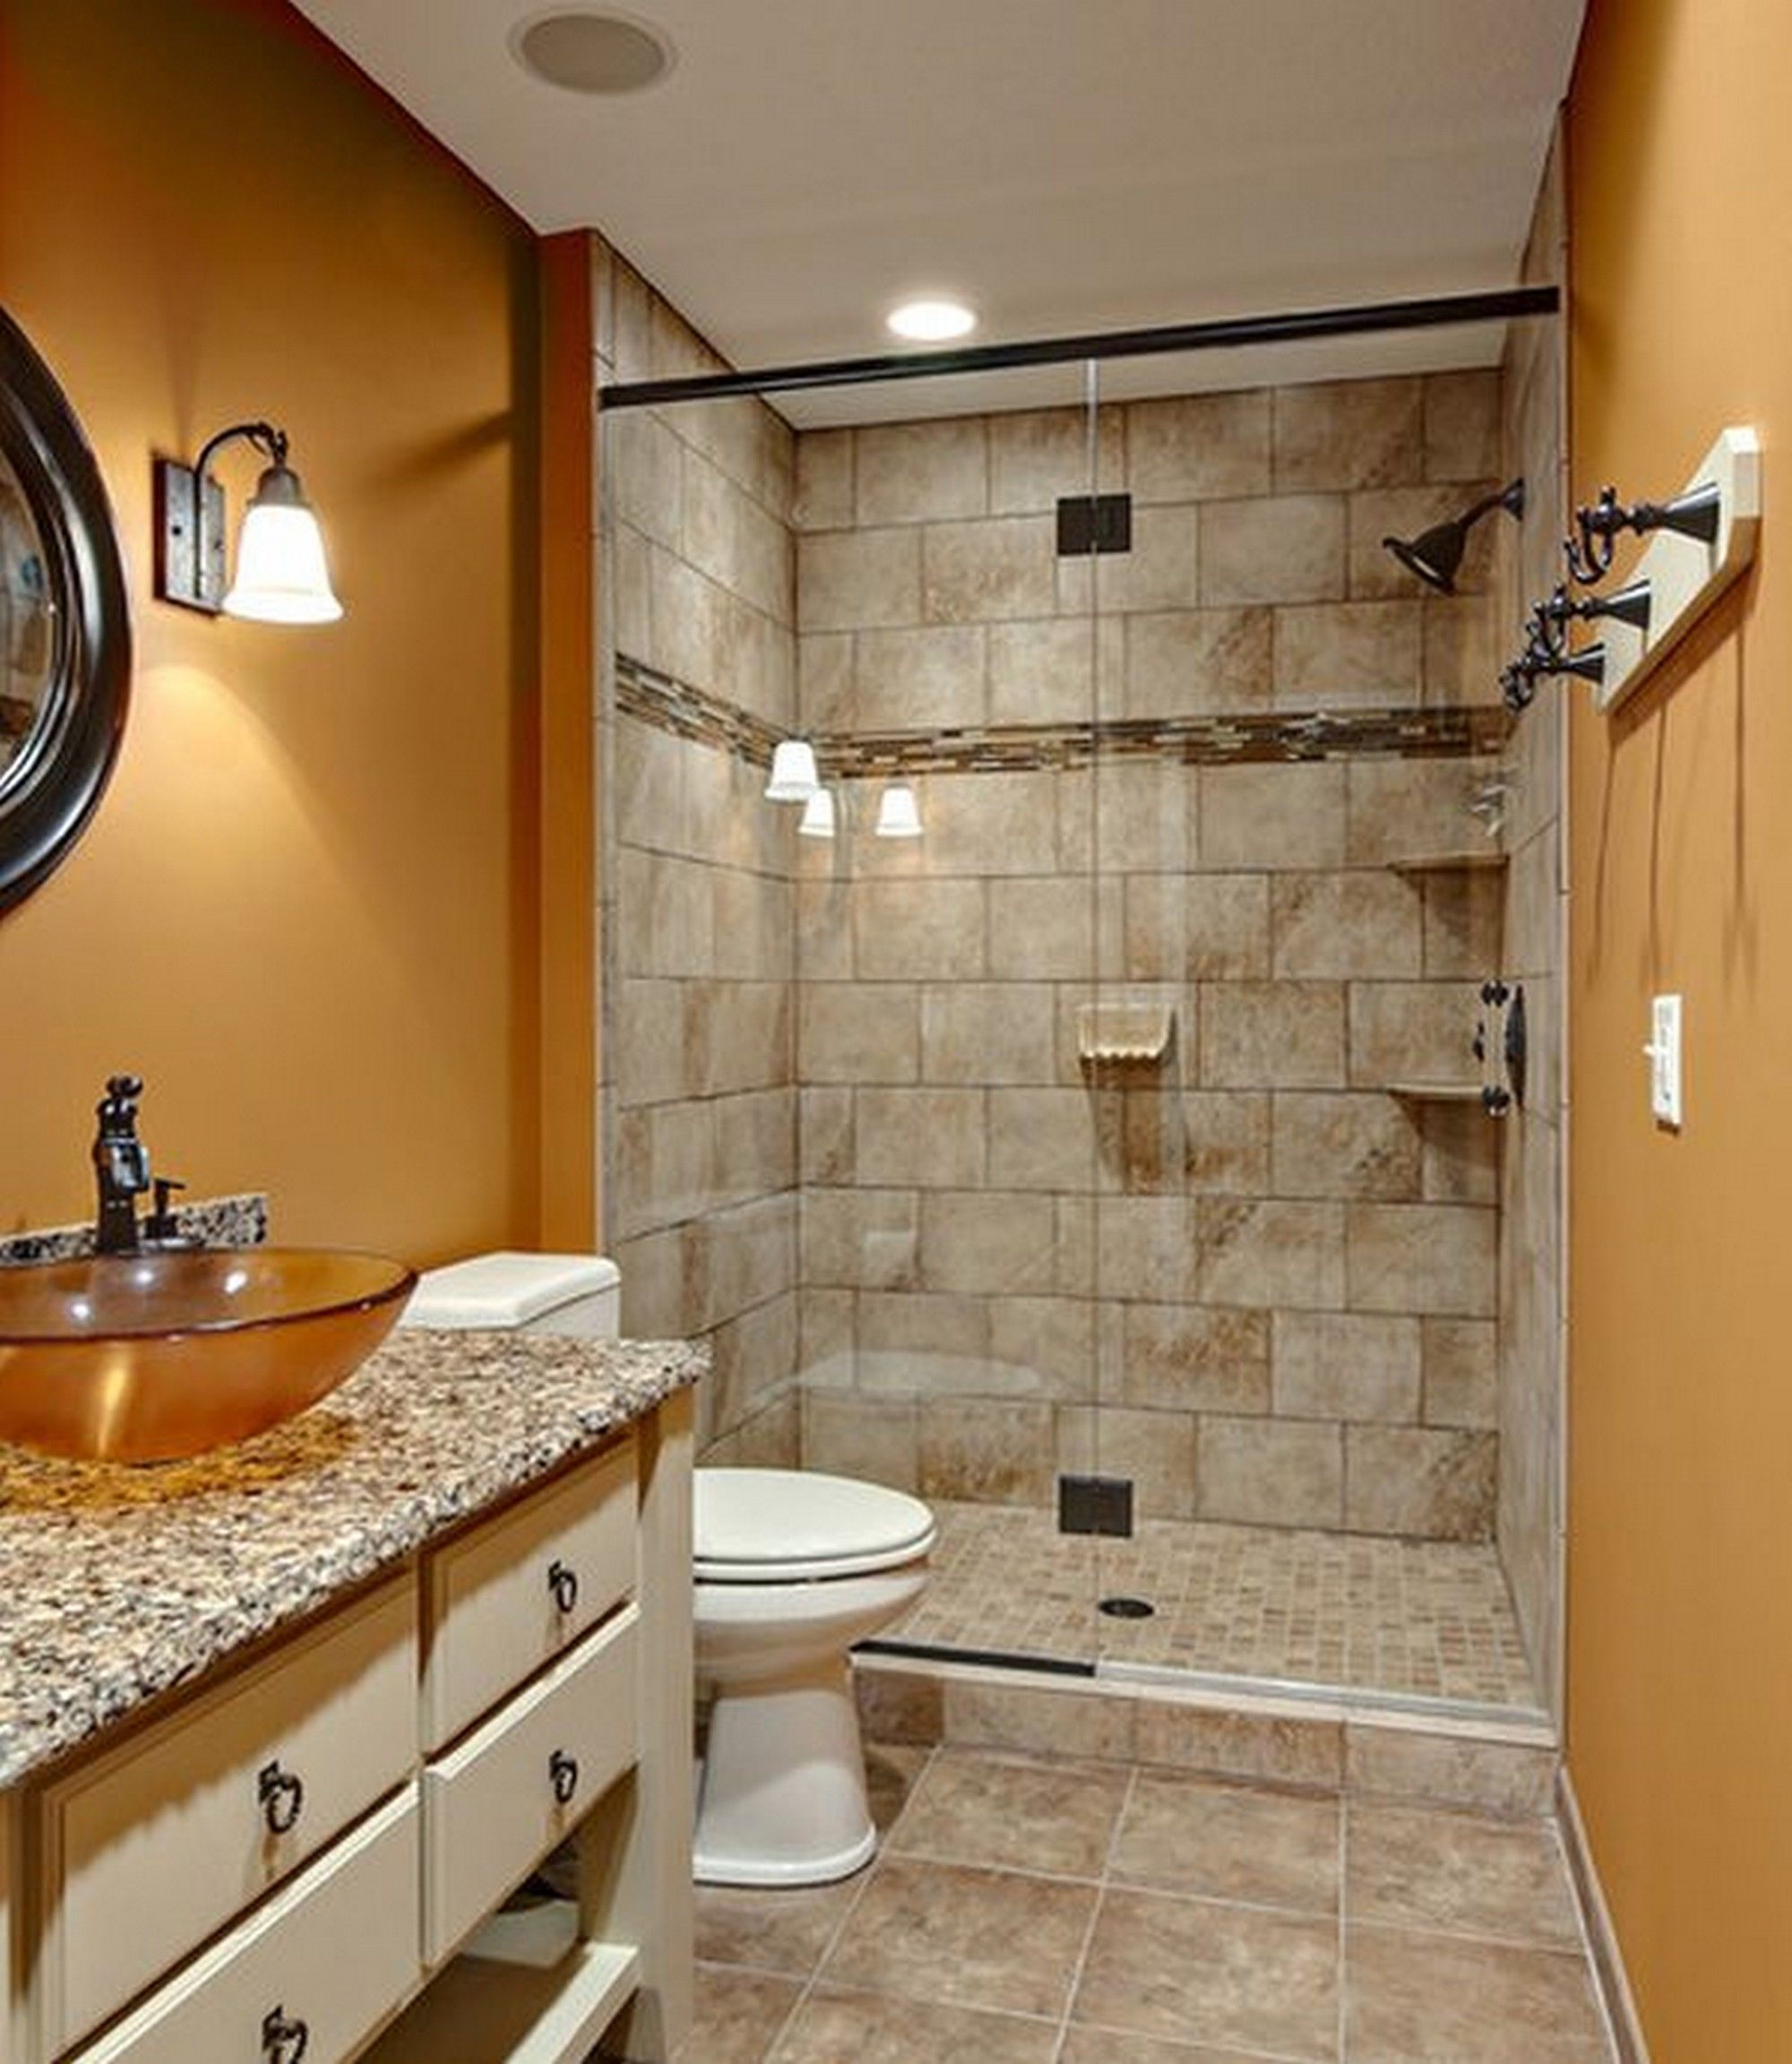 Modern Bathroom Design Ideas With Walk In Shower  Bathroom Interesting Walk In Shower For Small Bathroom 2018